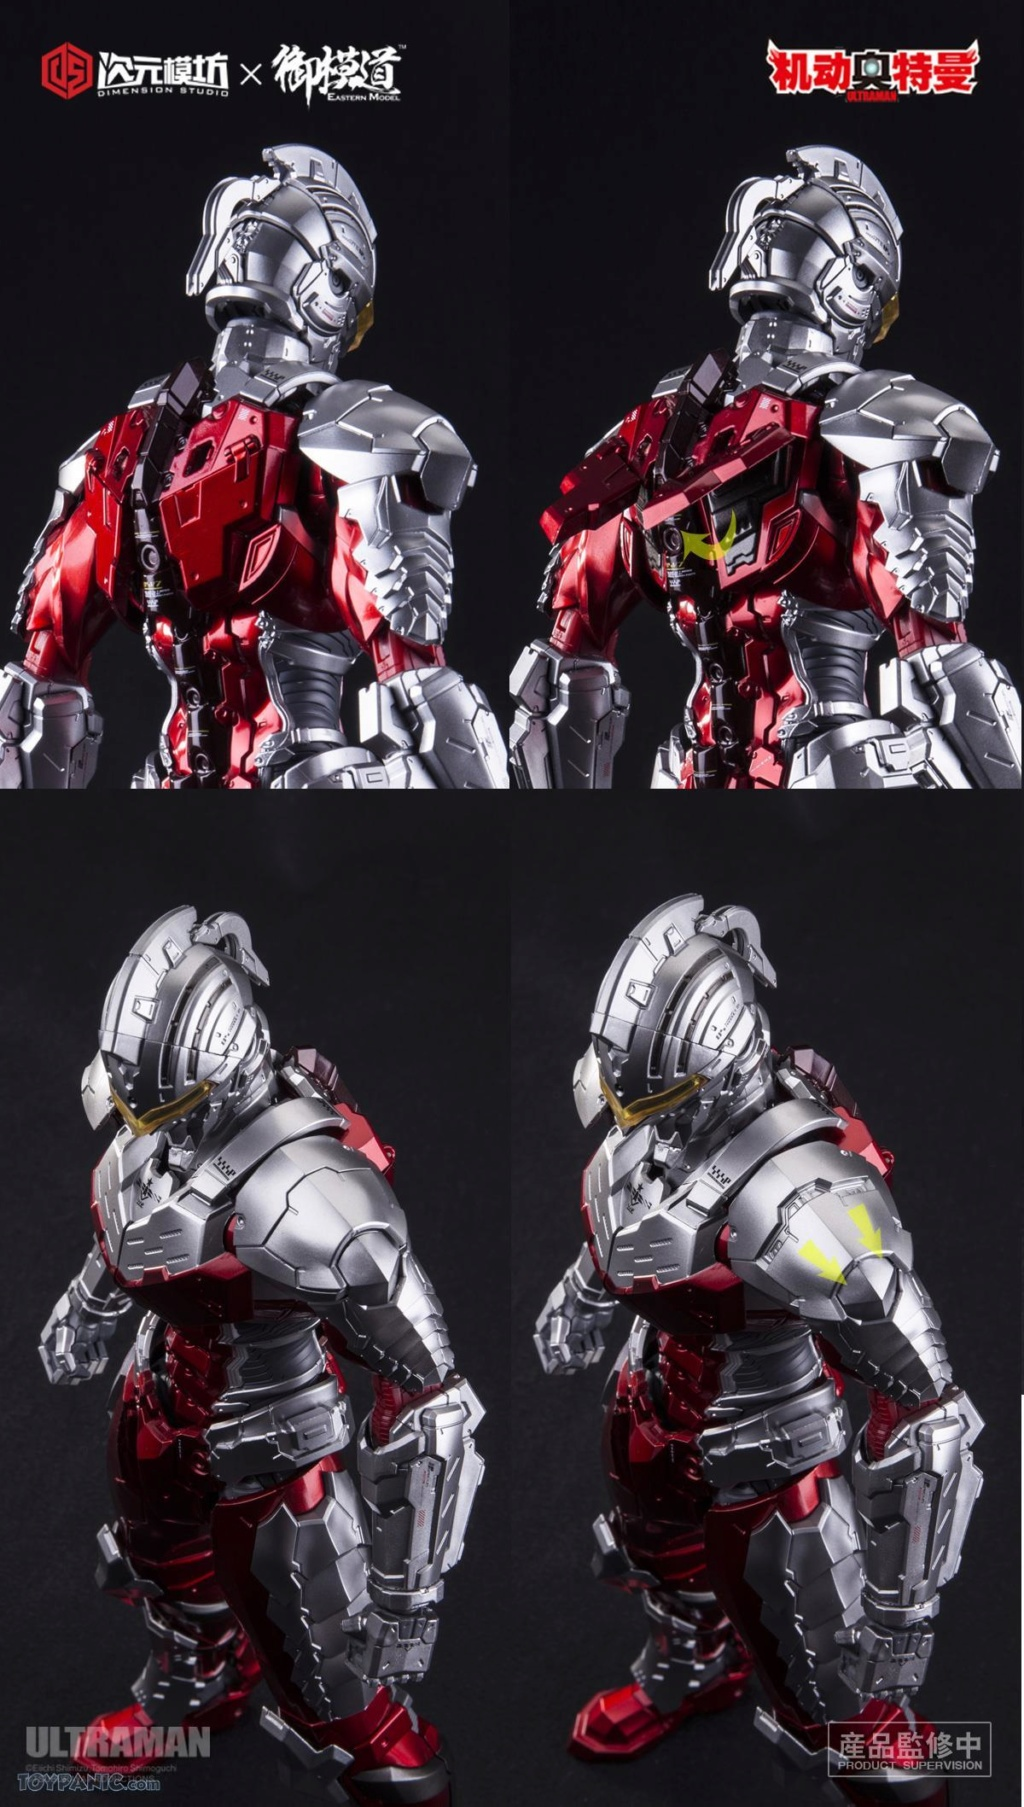 Ultraman - NEW PRODUCT: Dimension Studio X Model Principle: 1/6 Ultra Seven Suit Ver. 7.0 Action Figure  15201916